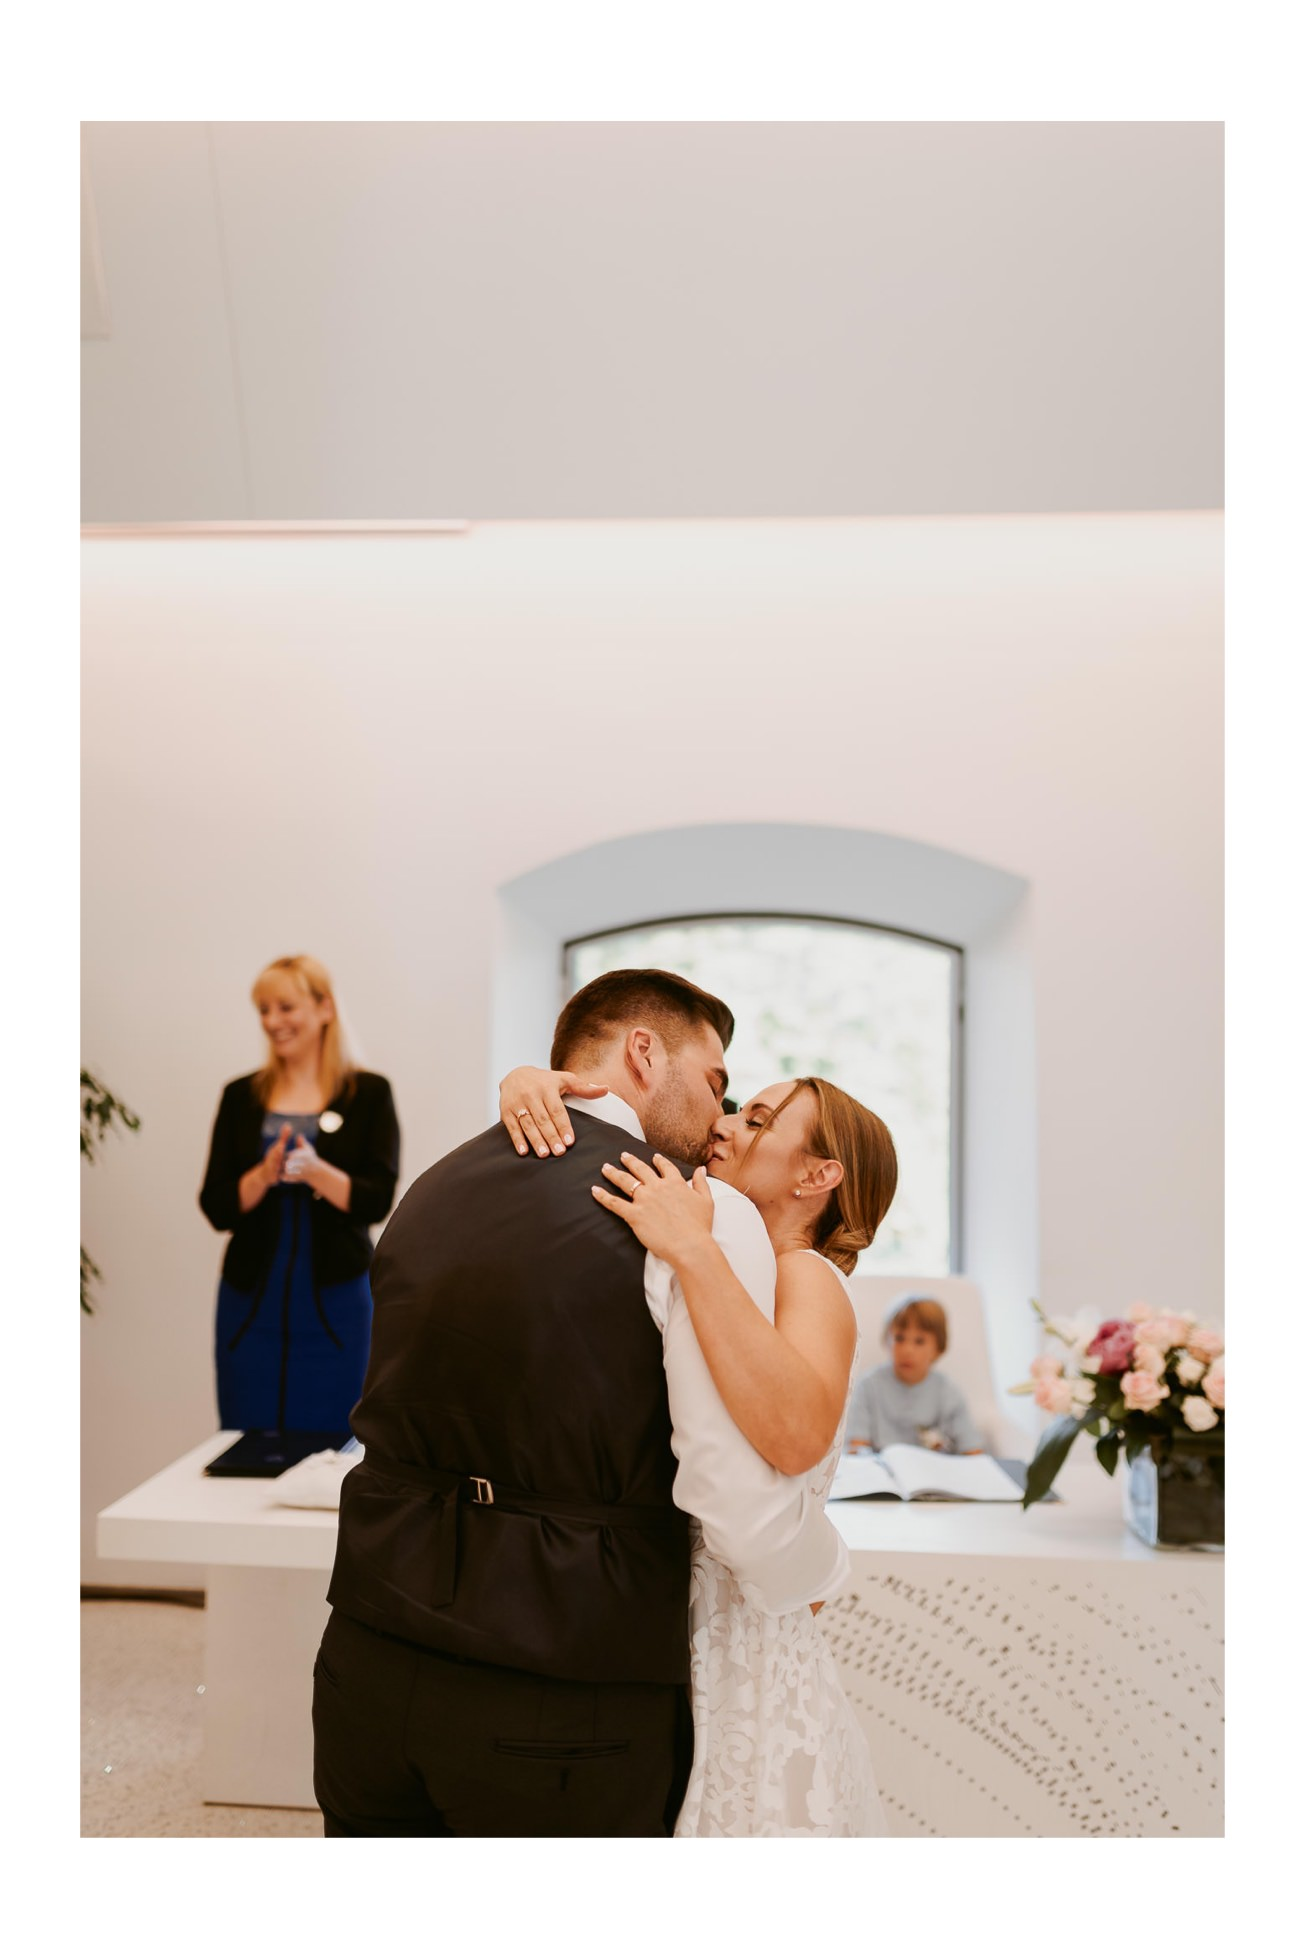 Ljubljana castle Dvor jezersek Wedding Photographer 26